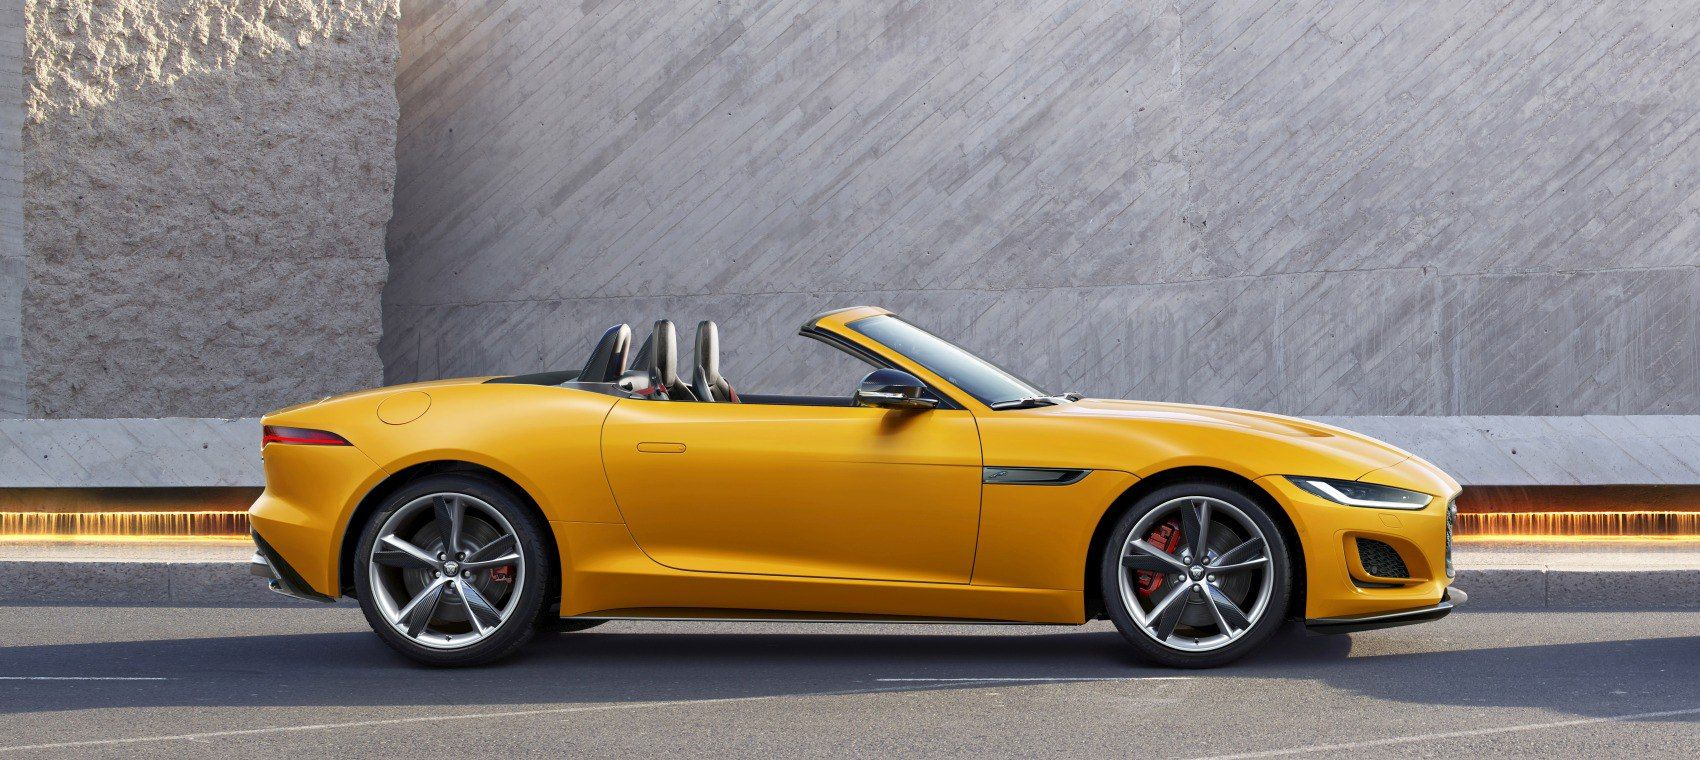 Jaguar Ftype F Type Convertible Facelift 2020 5 0 V8 450 Hp Quickshift Petrol Gasoline 2019 F Jaguar F Type New Jaguar F Type New Jaguar